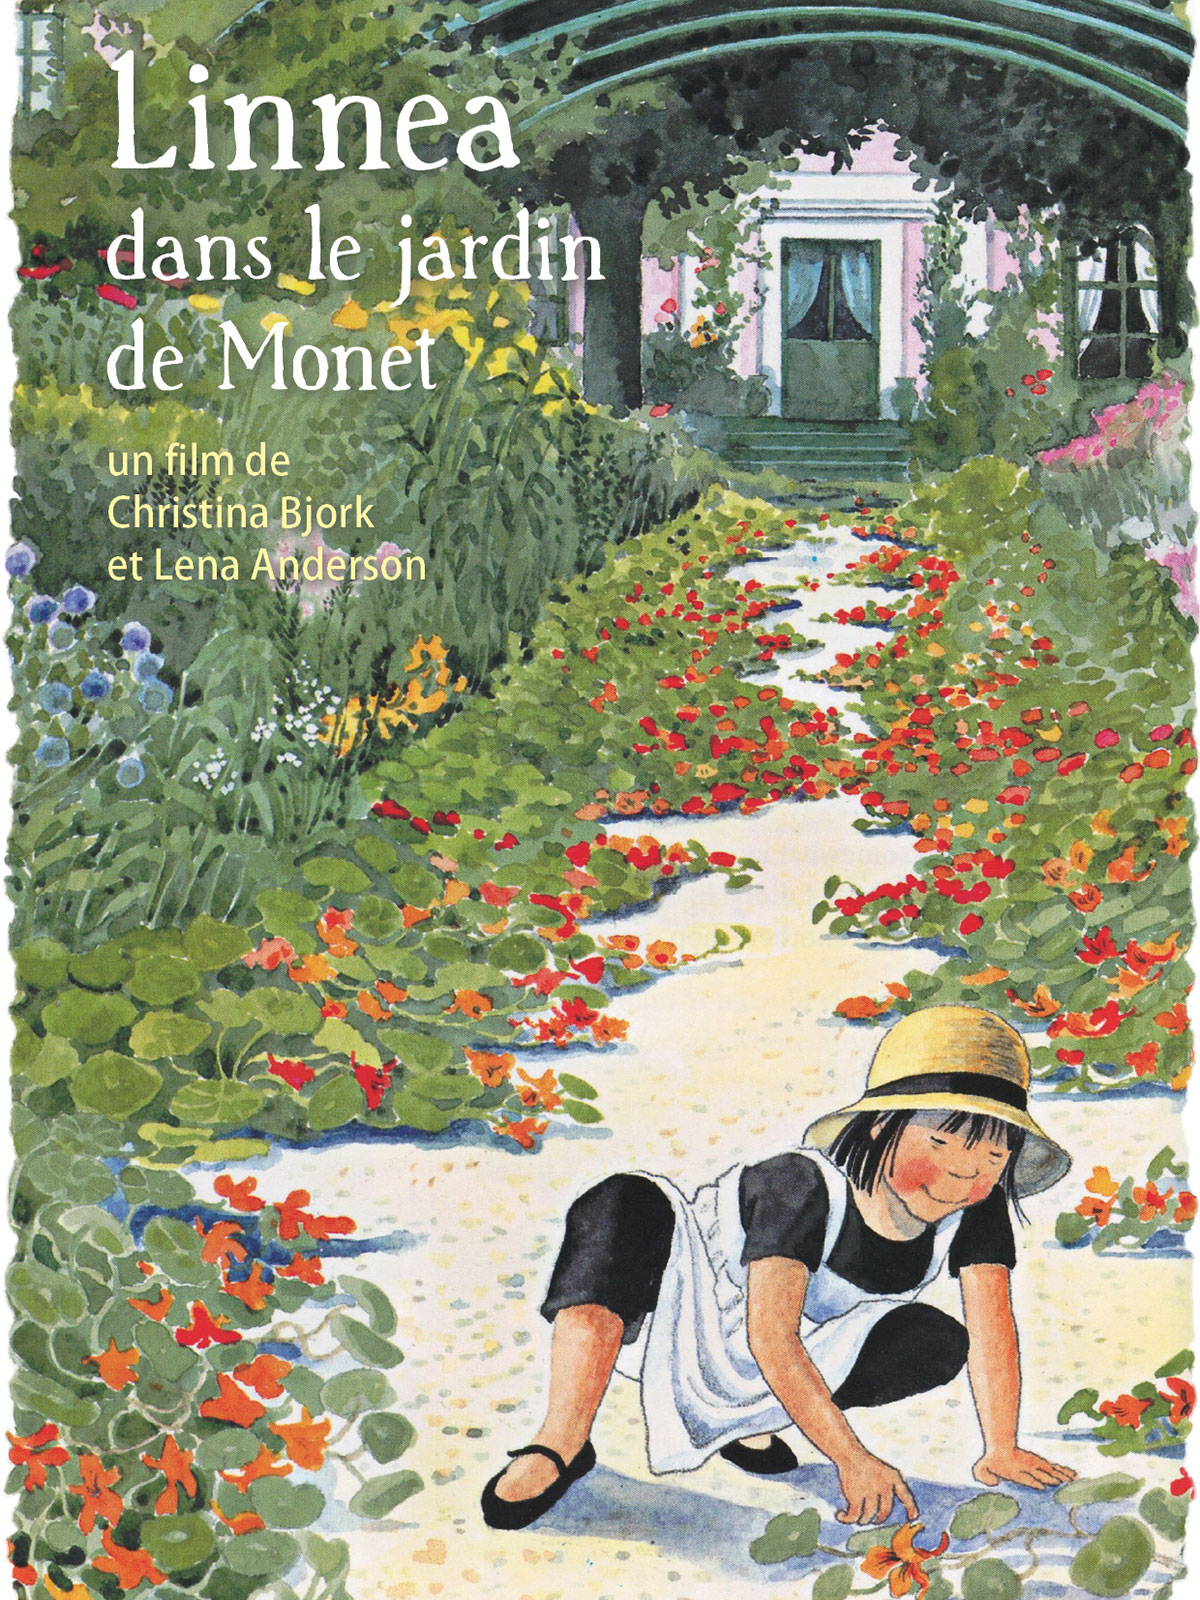 Linnea dans le jardin de monet photos et affiches allocin for Le jardin qui bascule streaming